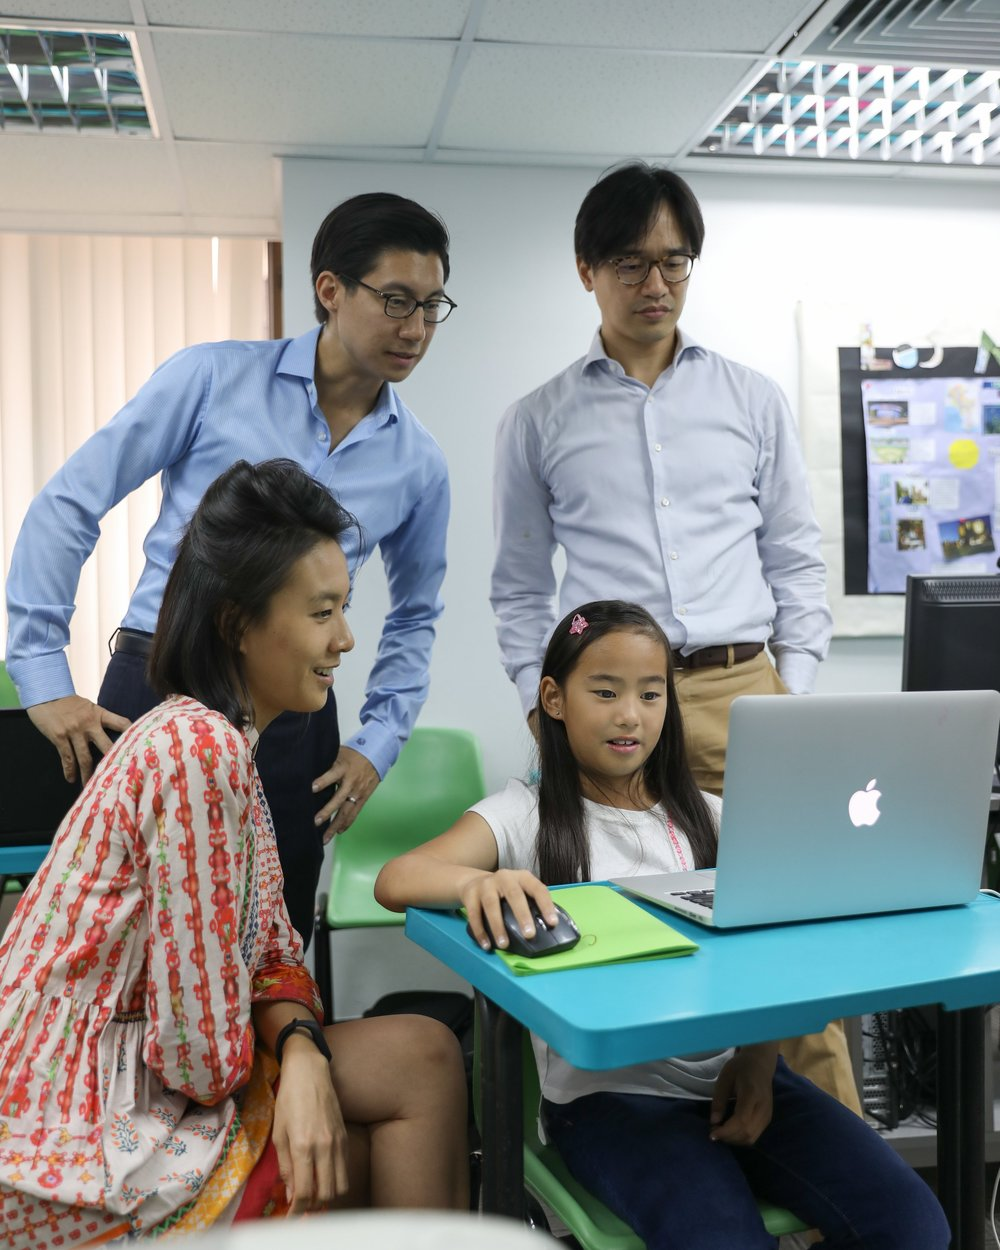 Natalie Chan, Founder of OWN Academy, Douglas Wu, Executive Director of Fairland Holdings and Eugene Wong, Director of Posang Capital with student Evelyn Kwok discussing her design for an inclusive rainbow staircase